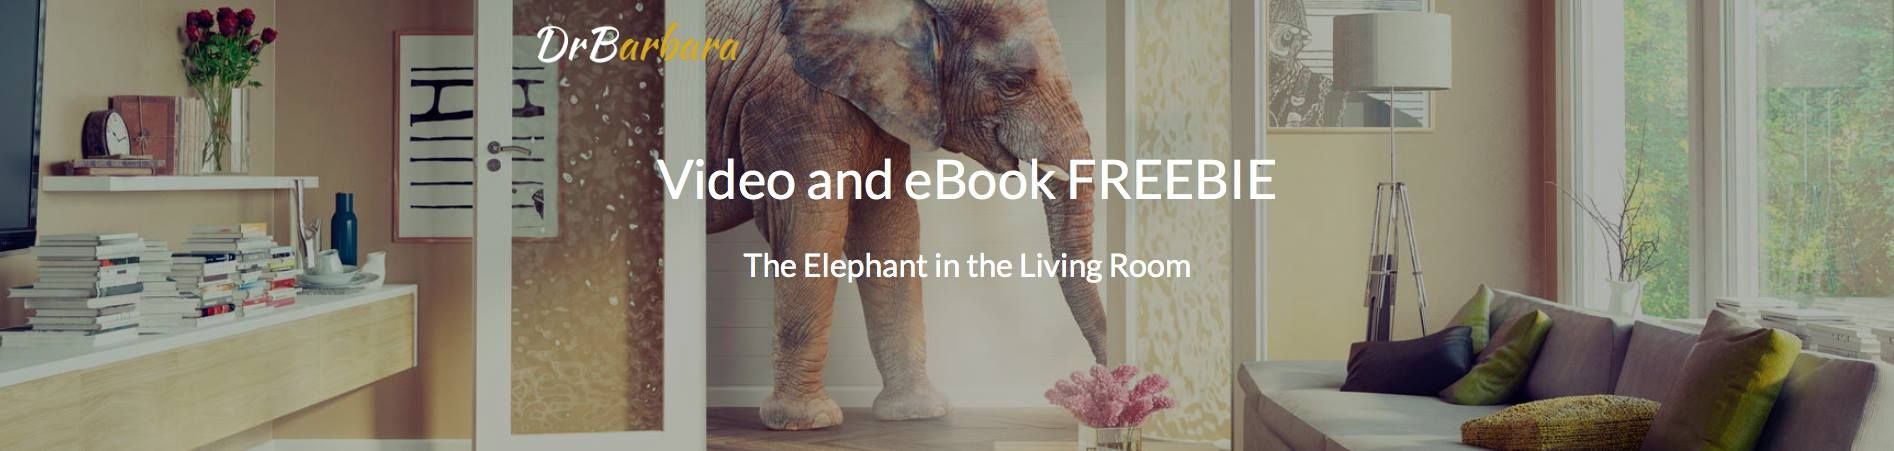 A Free Video And E Book There An Elephant In The Living Room